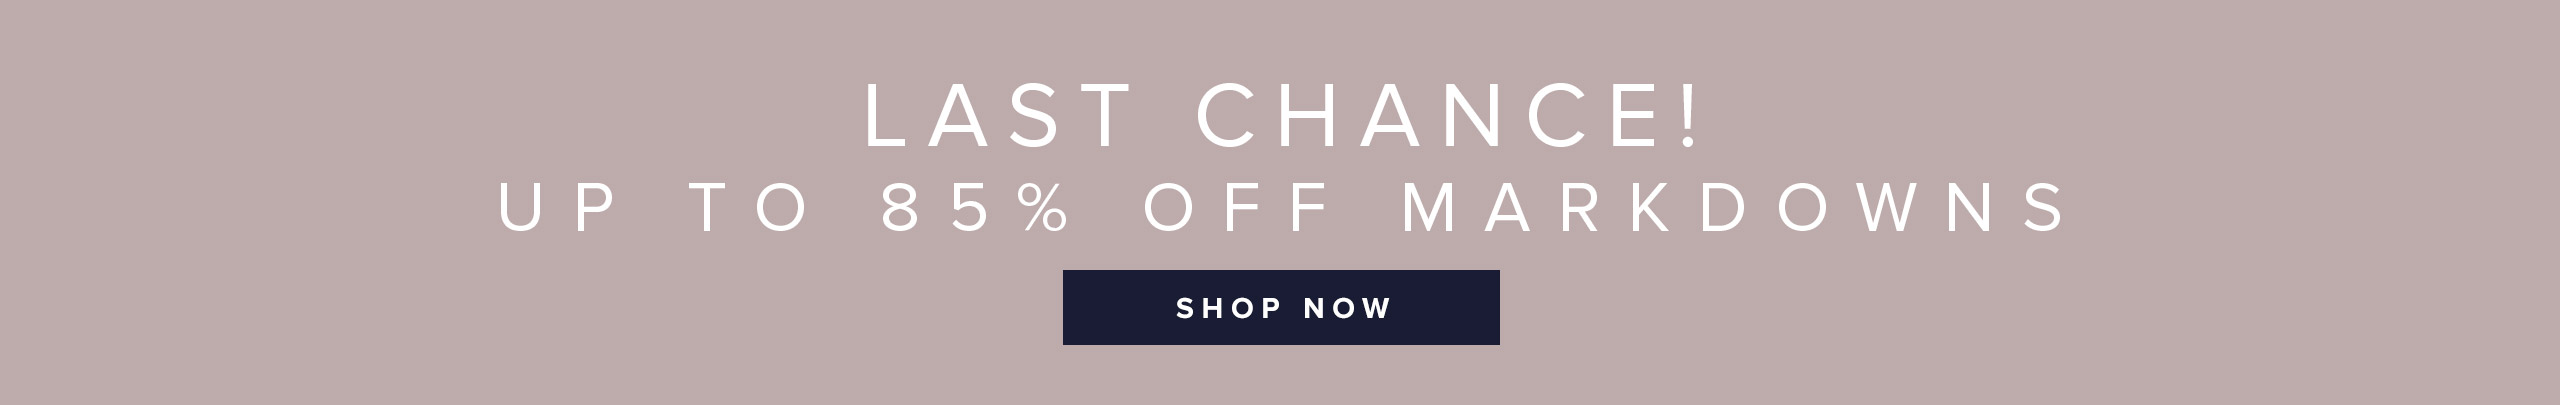 Last chance! up to 85% off markdowns